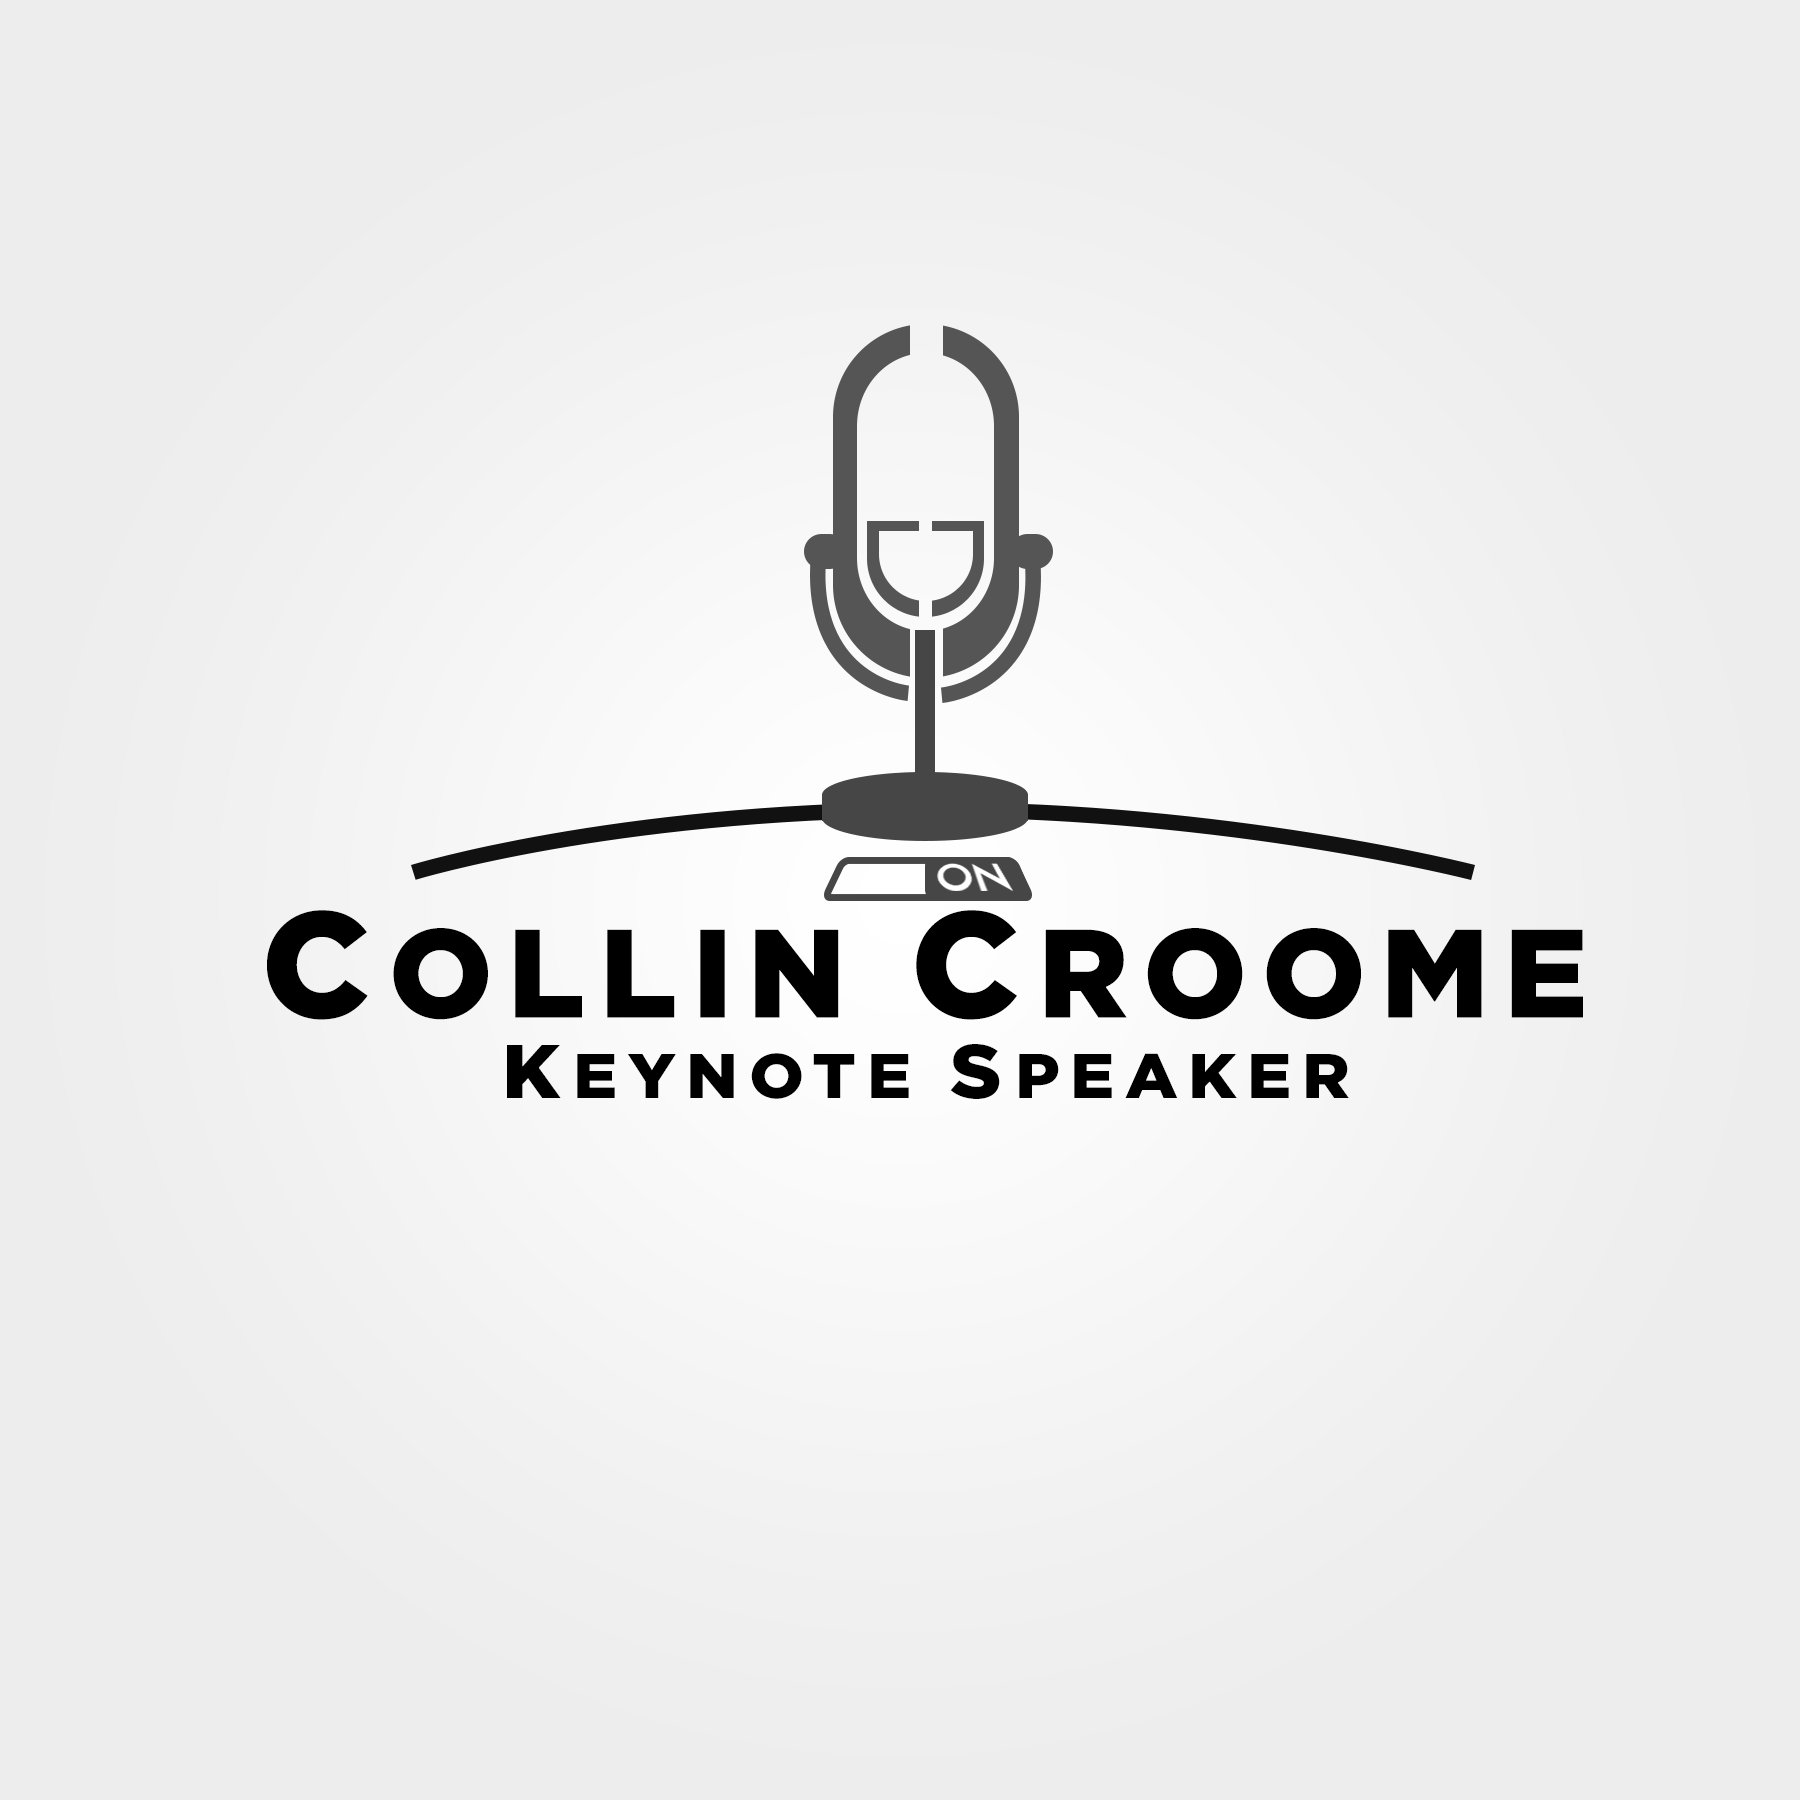 Logo Design by Lemuel Arvin Tanzo - Entry No. 100 in the Logo Design Contest Modern Logo Design for Collin Croome.